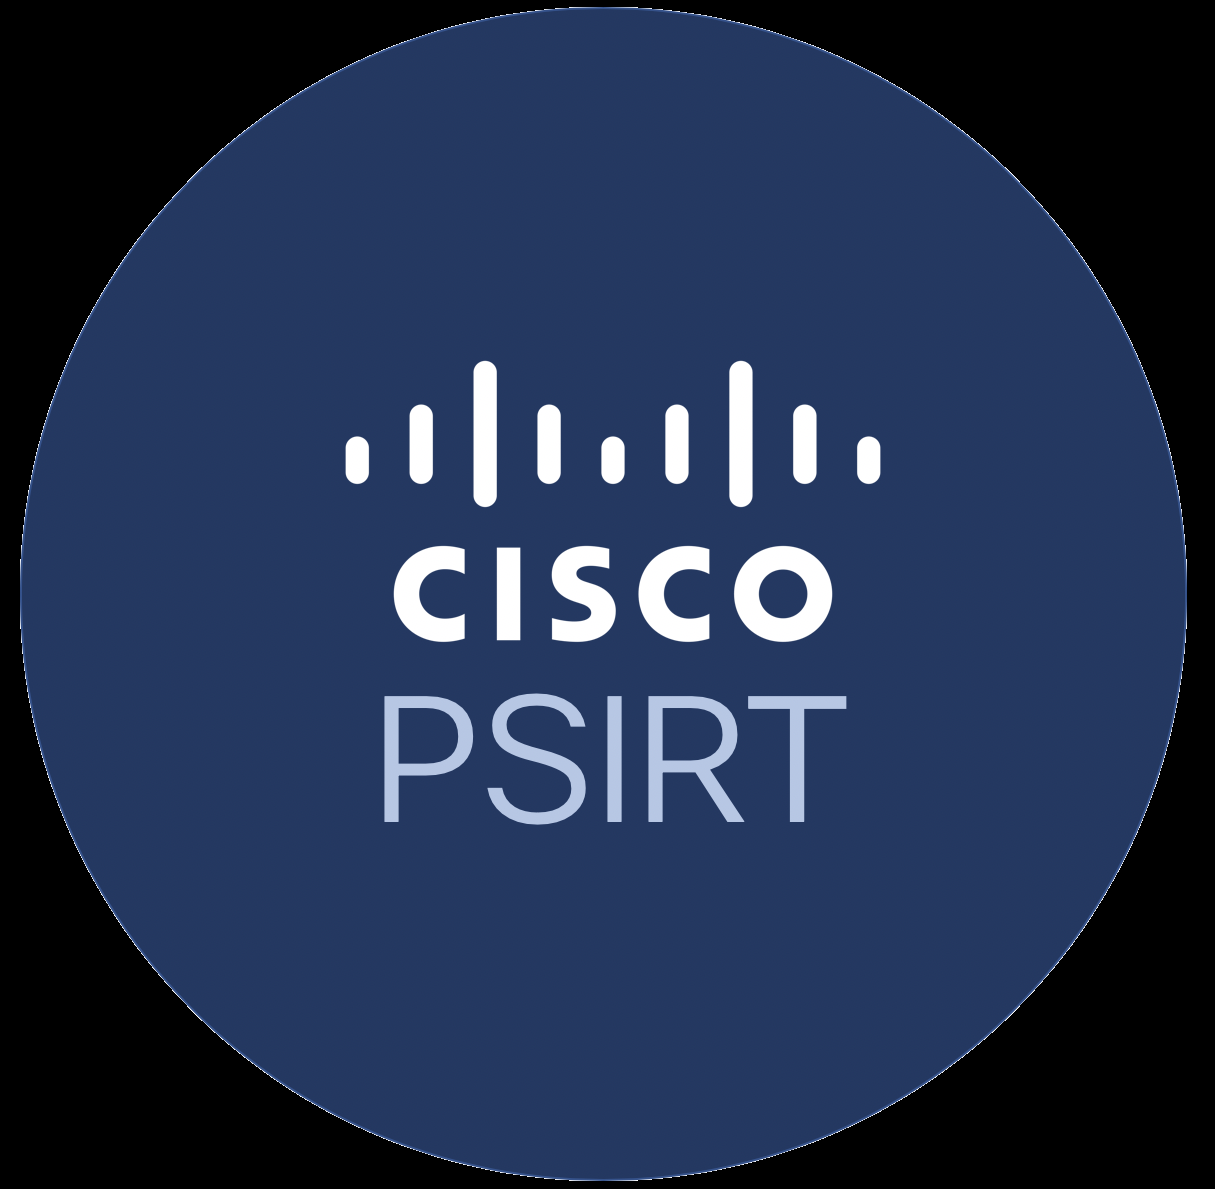 cisco_psirt.png